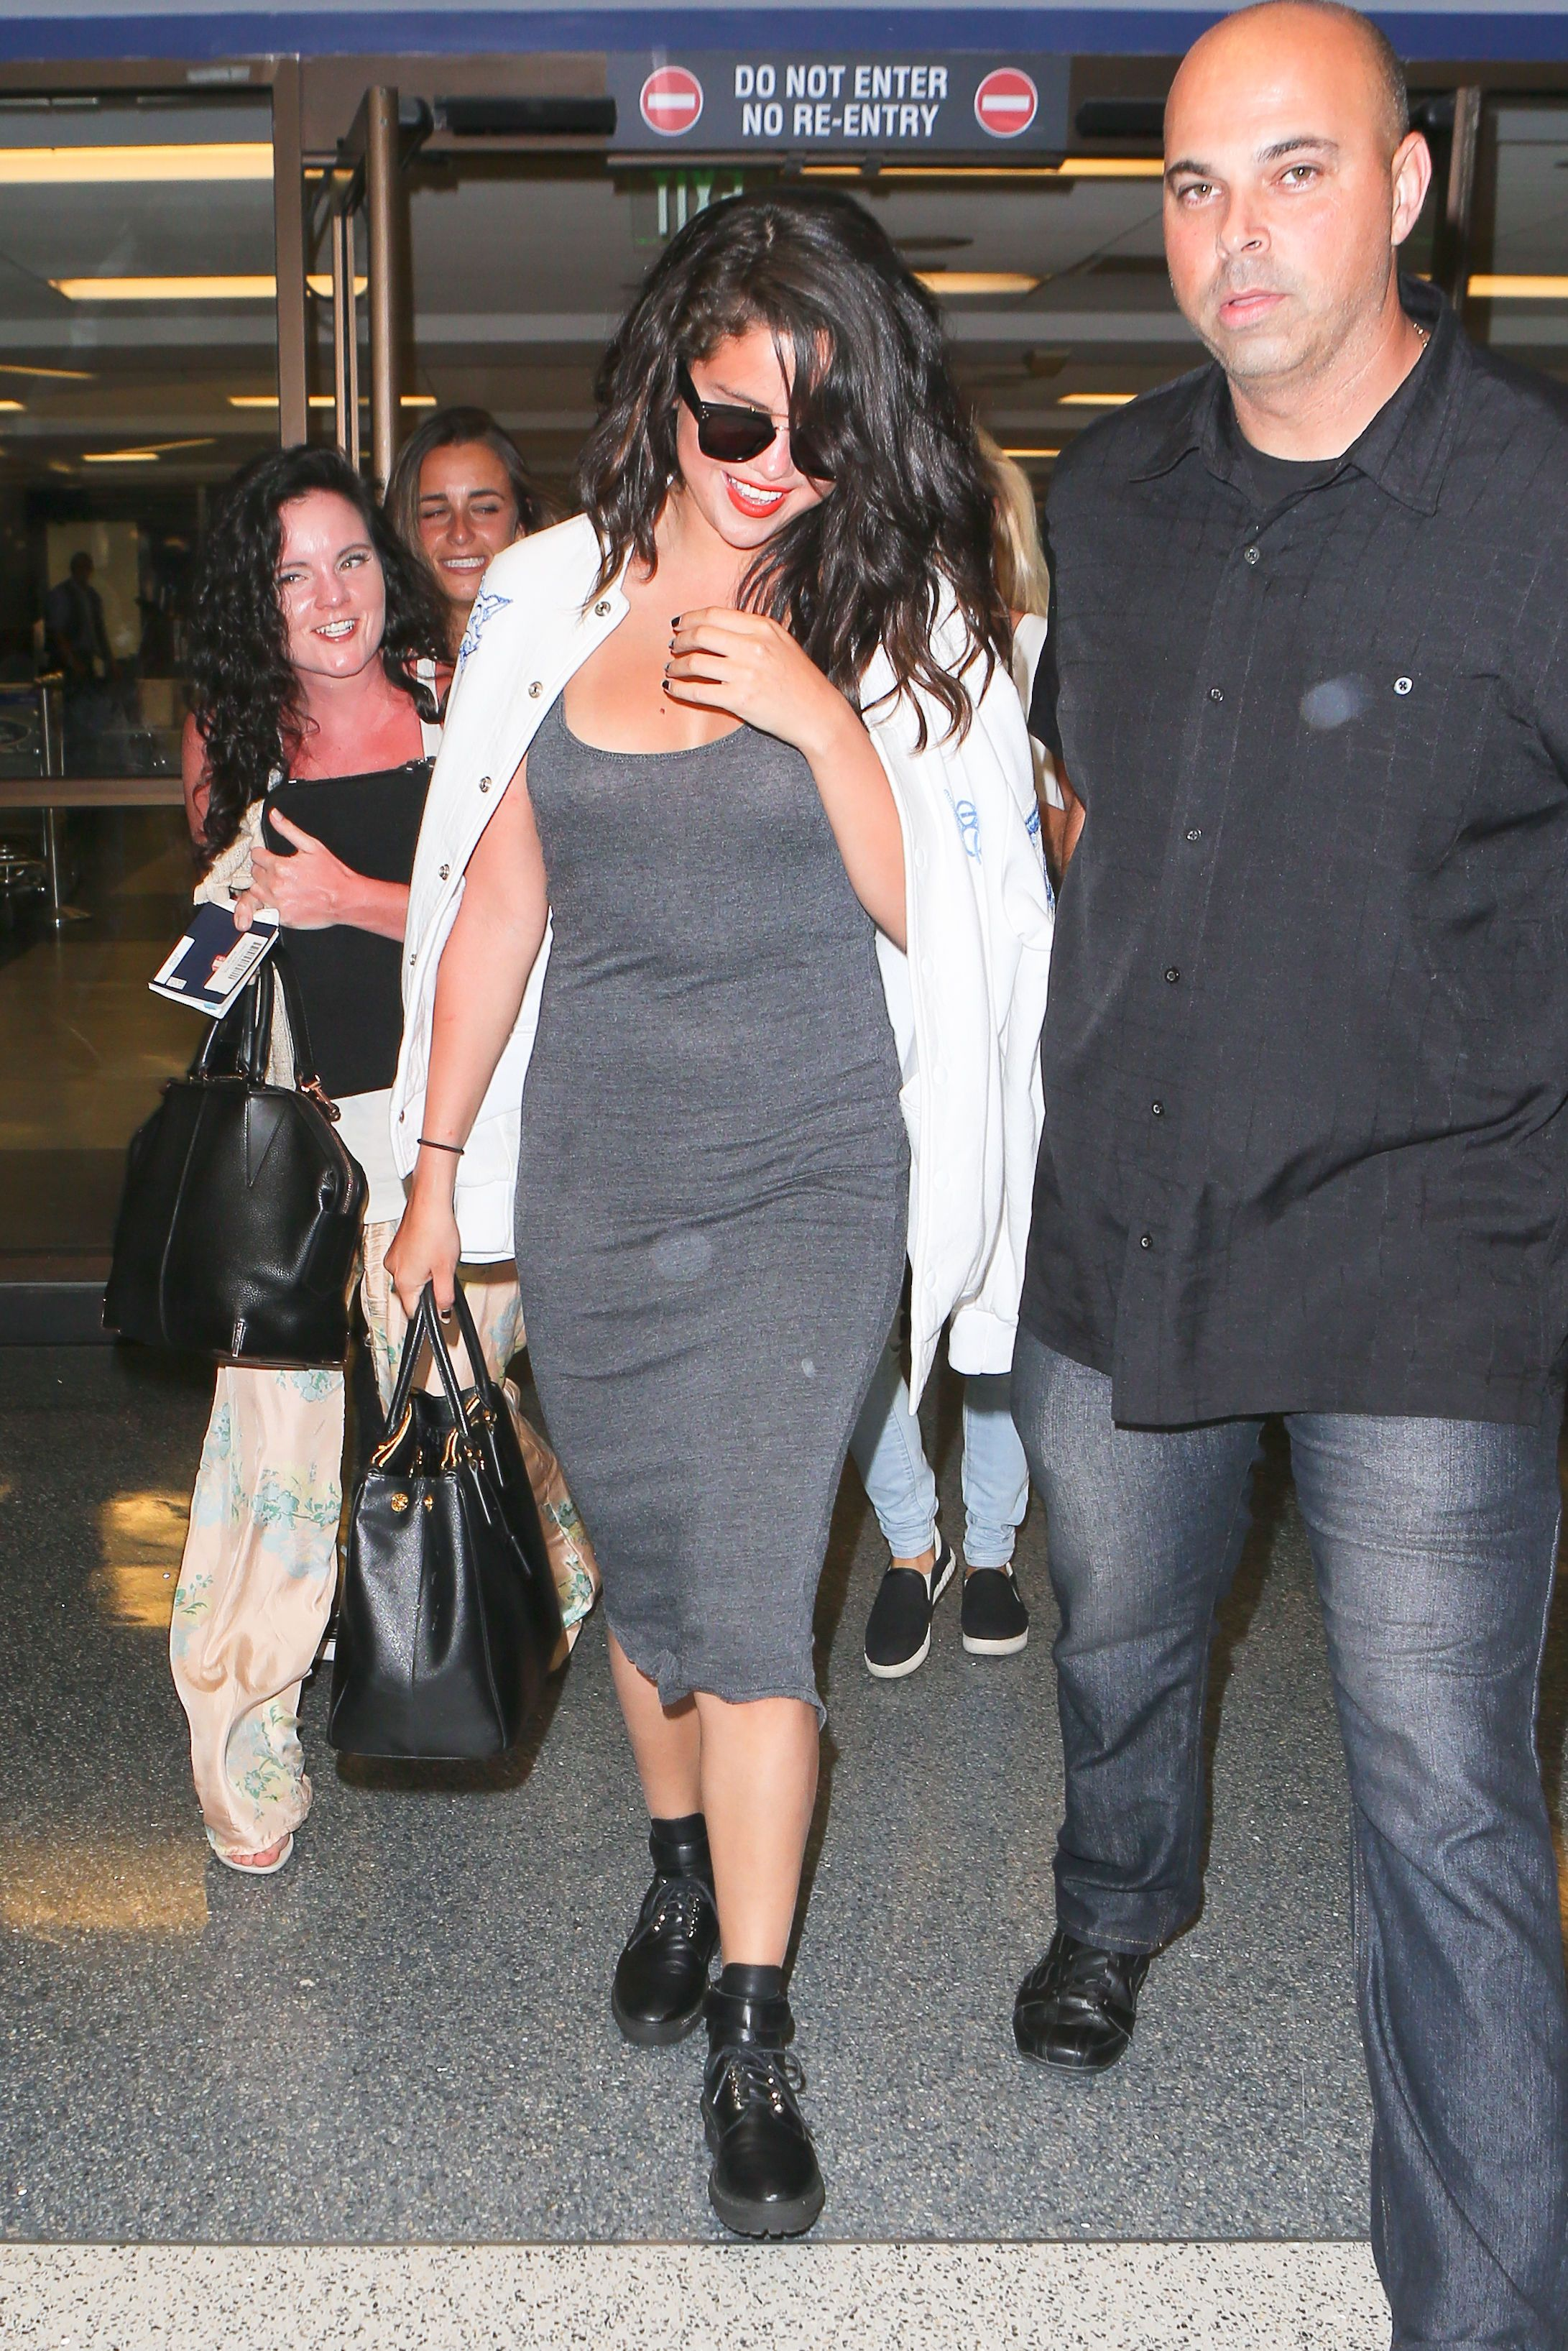 Selena Gomez arriving at LAX airport in LA - April 19 2015